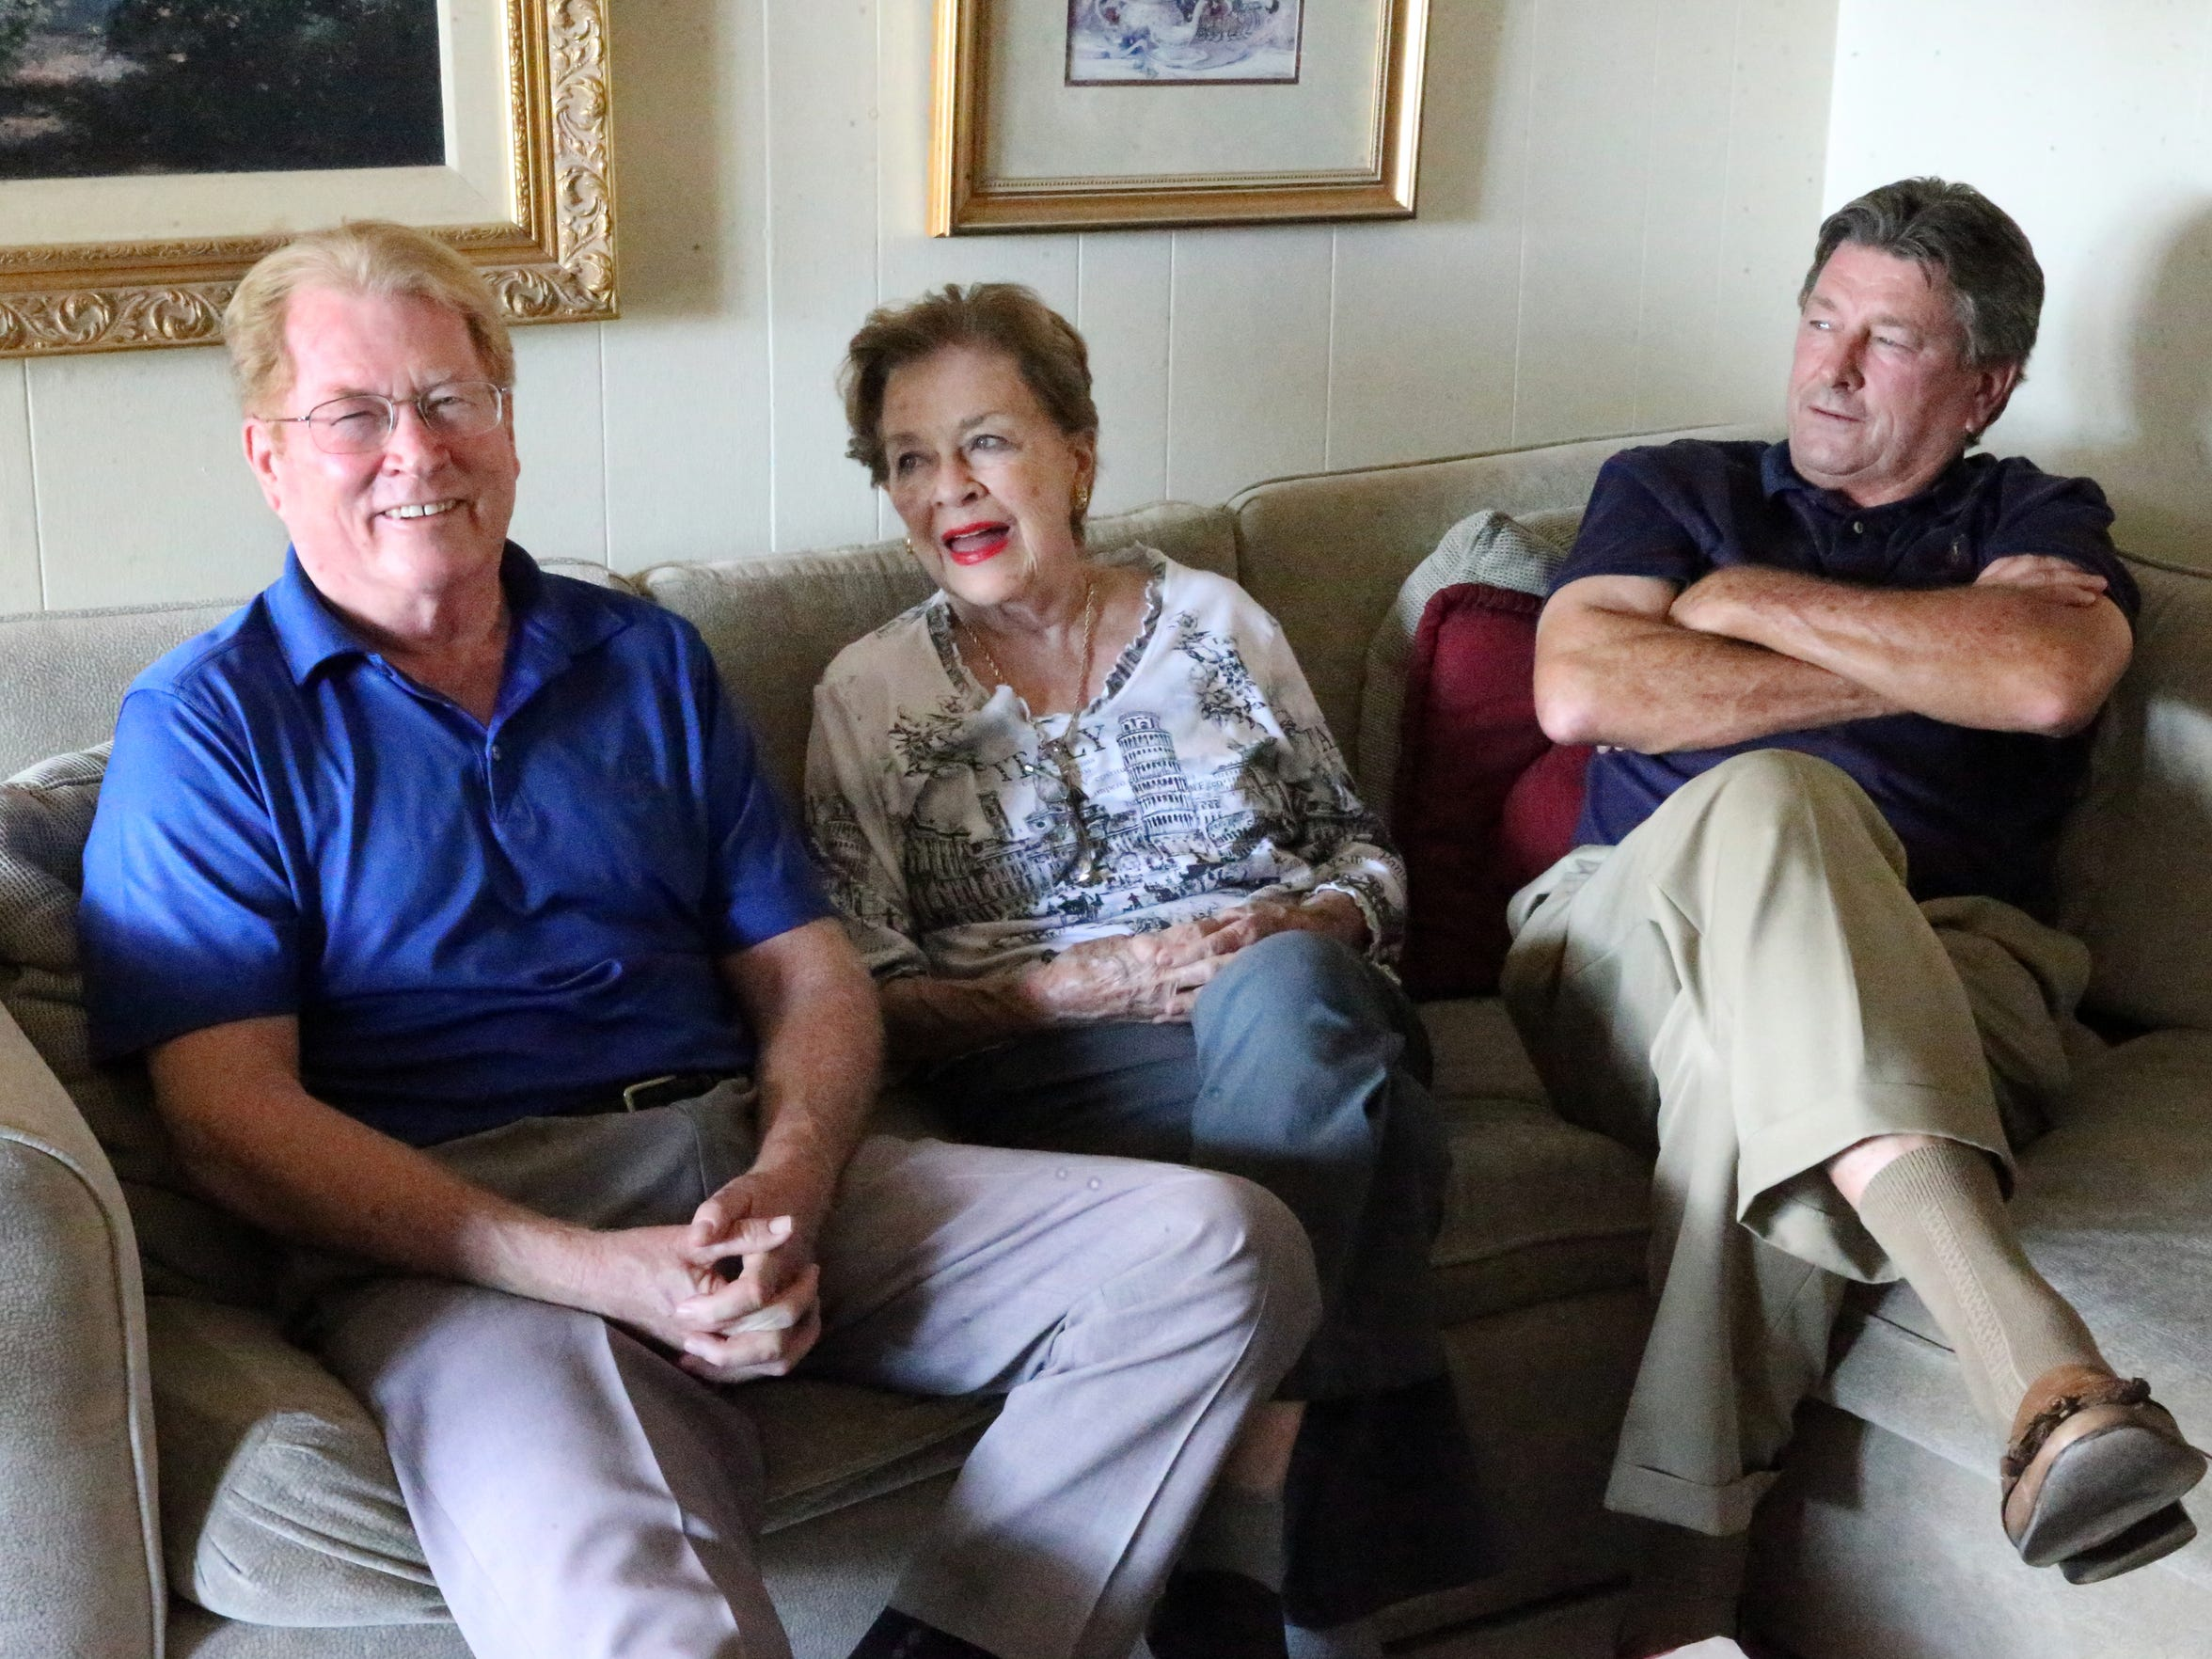 Mary Haskins and sons Brent, left, and Steve, right, reminisce about 'The Bear' in her West El Paso home.